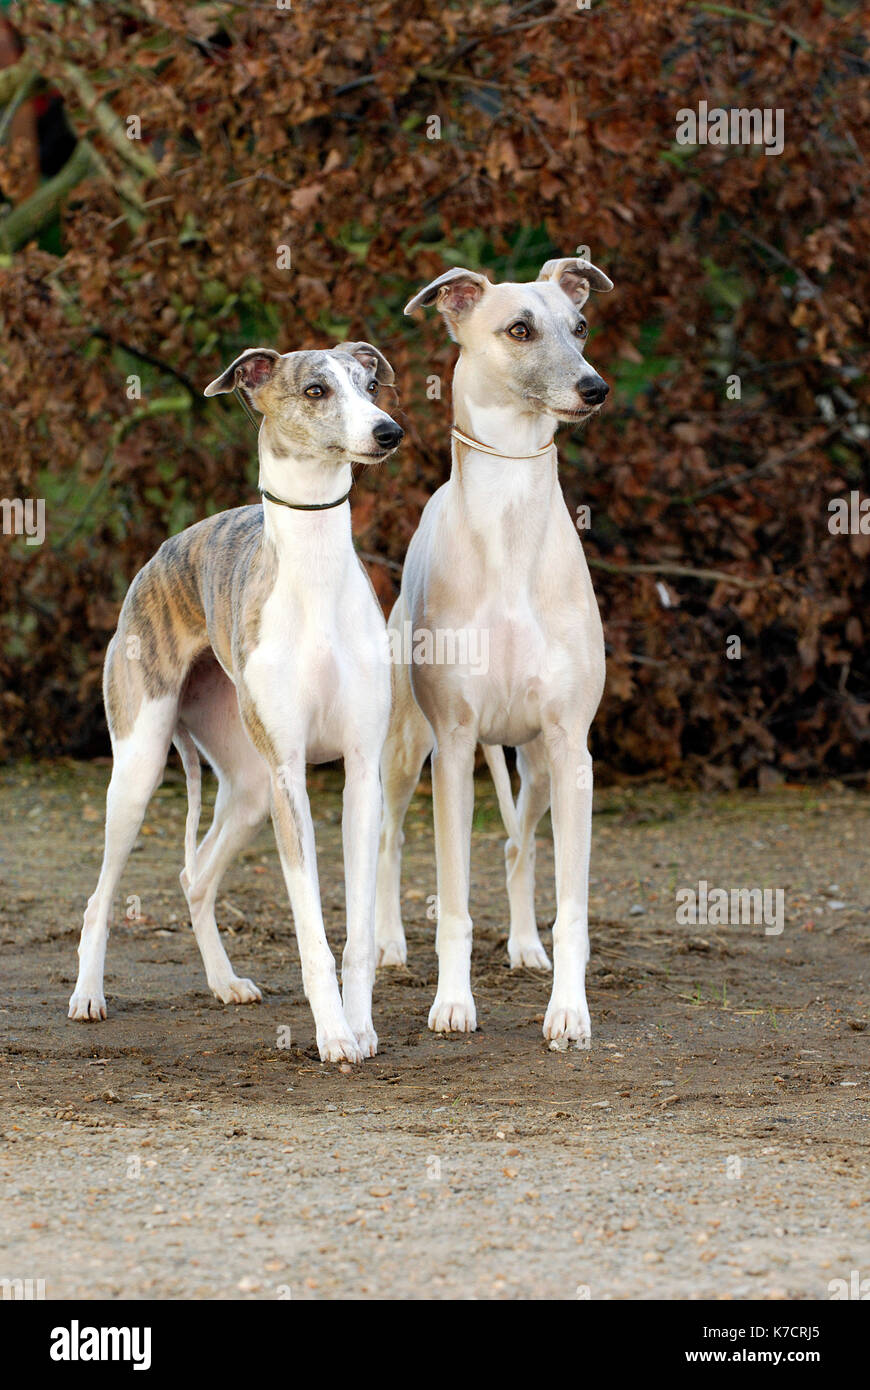 Two whippets dogs standing in front of a hedge with autumn colours looking at something preoccupied and funny humourous stance or demeanour. - Stock Image